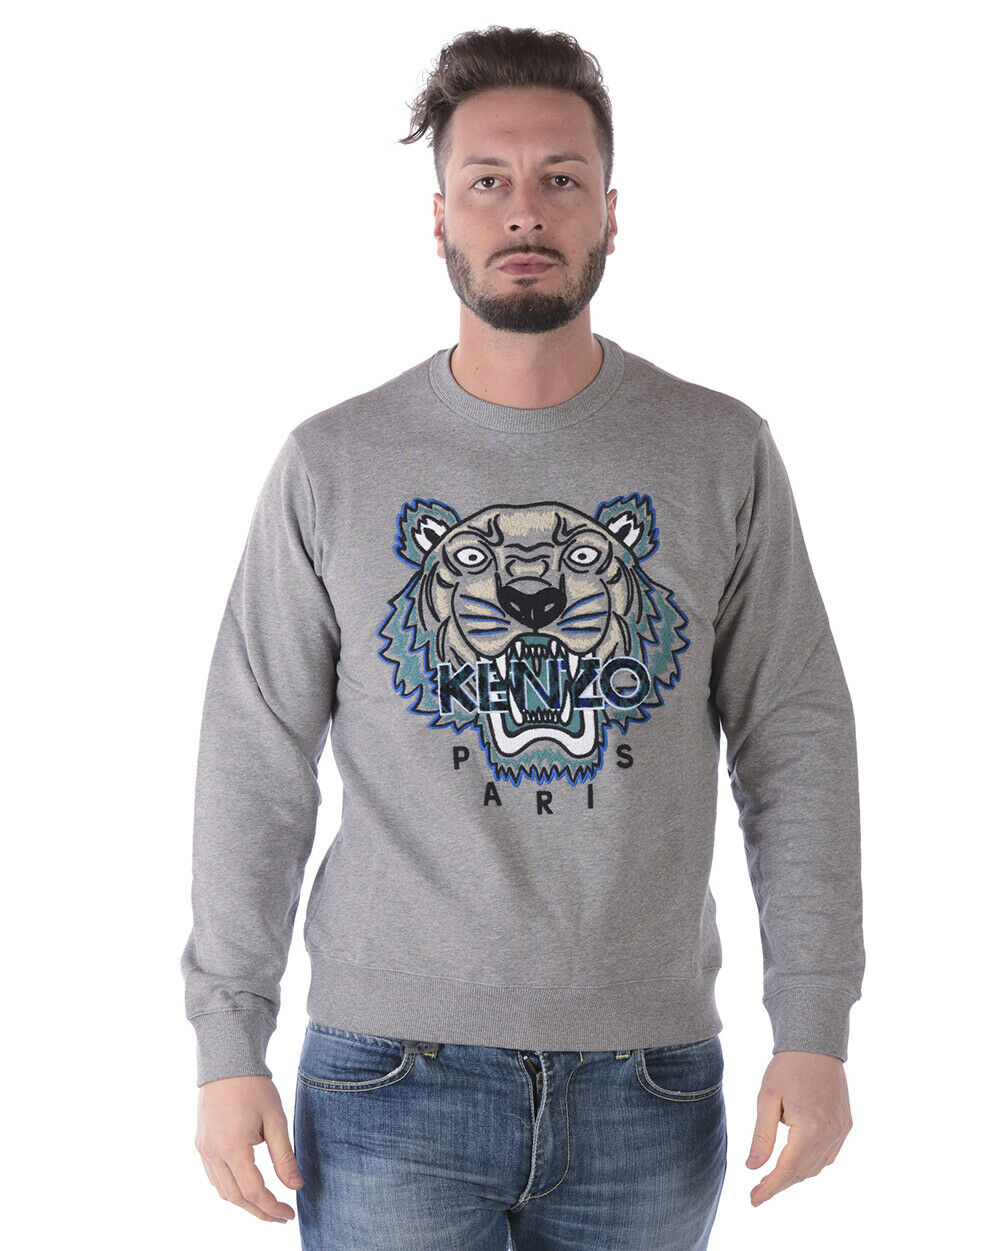 Kenzo SweatHemd Hoodie TIGER Cotton Man grau 4XG5SW088 95 Sz. L PUT OFFER